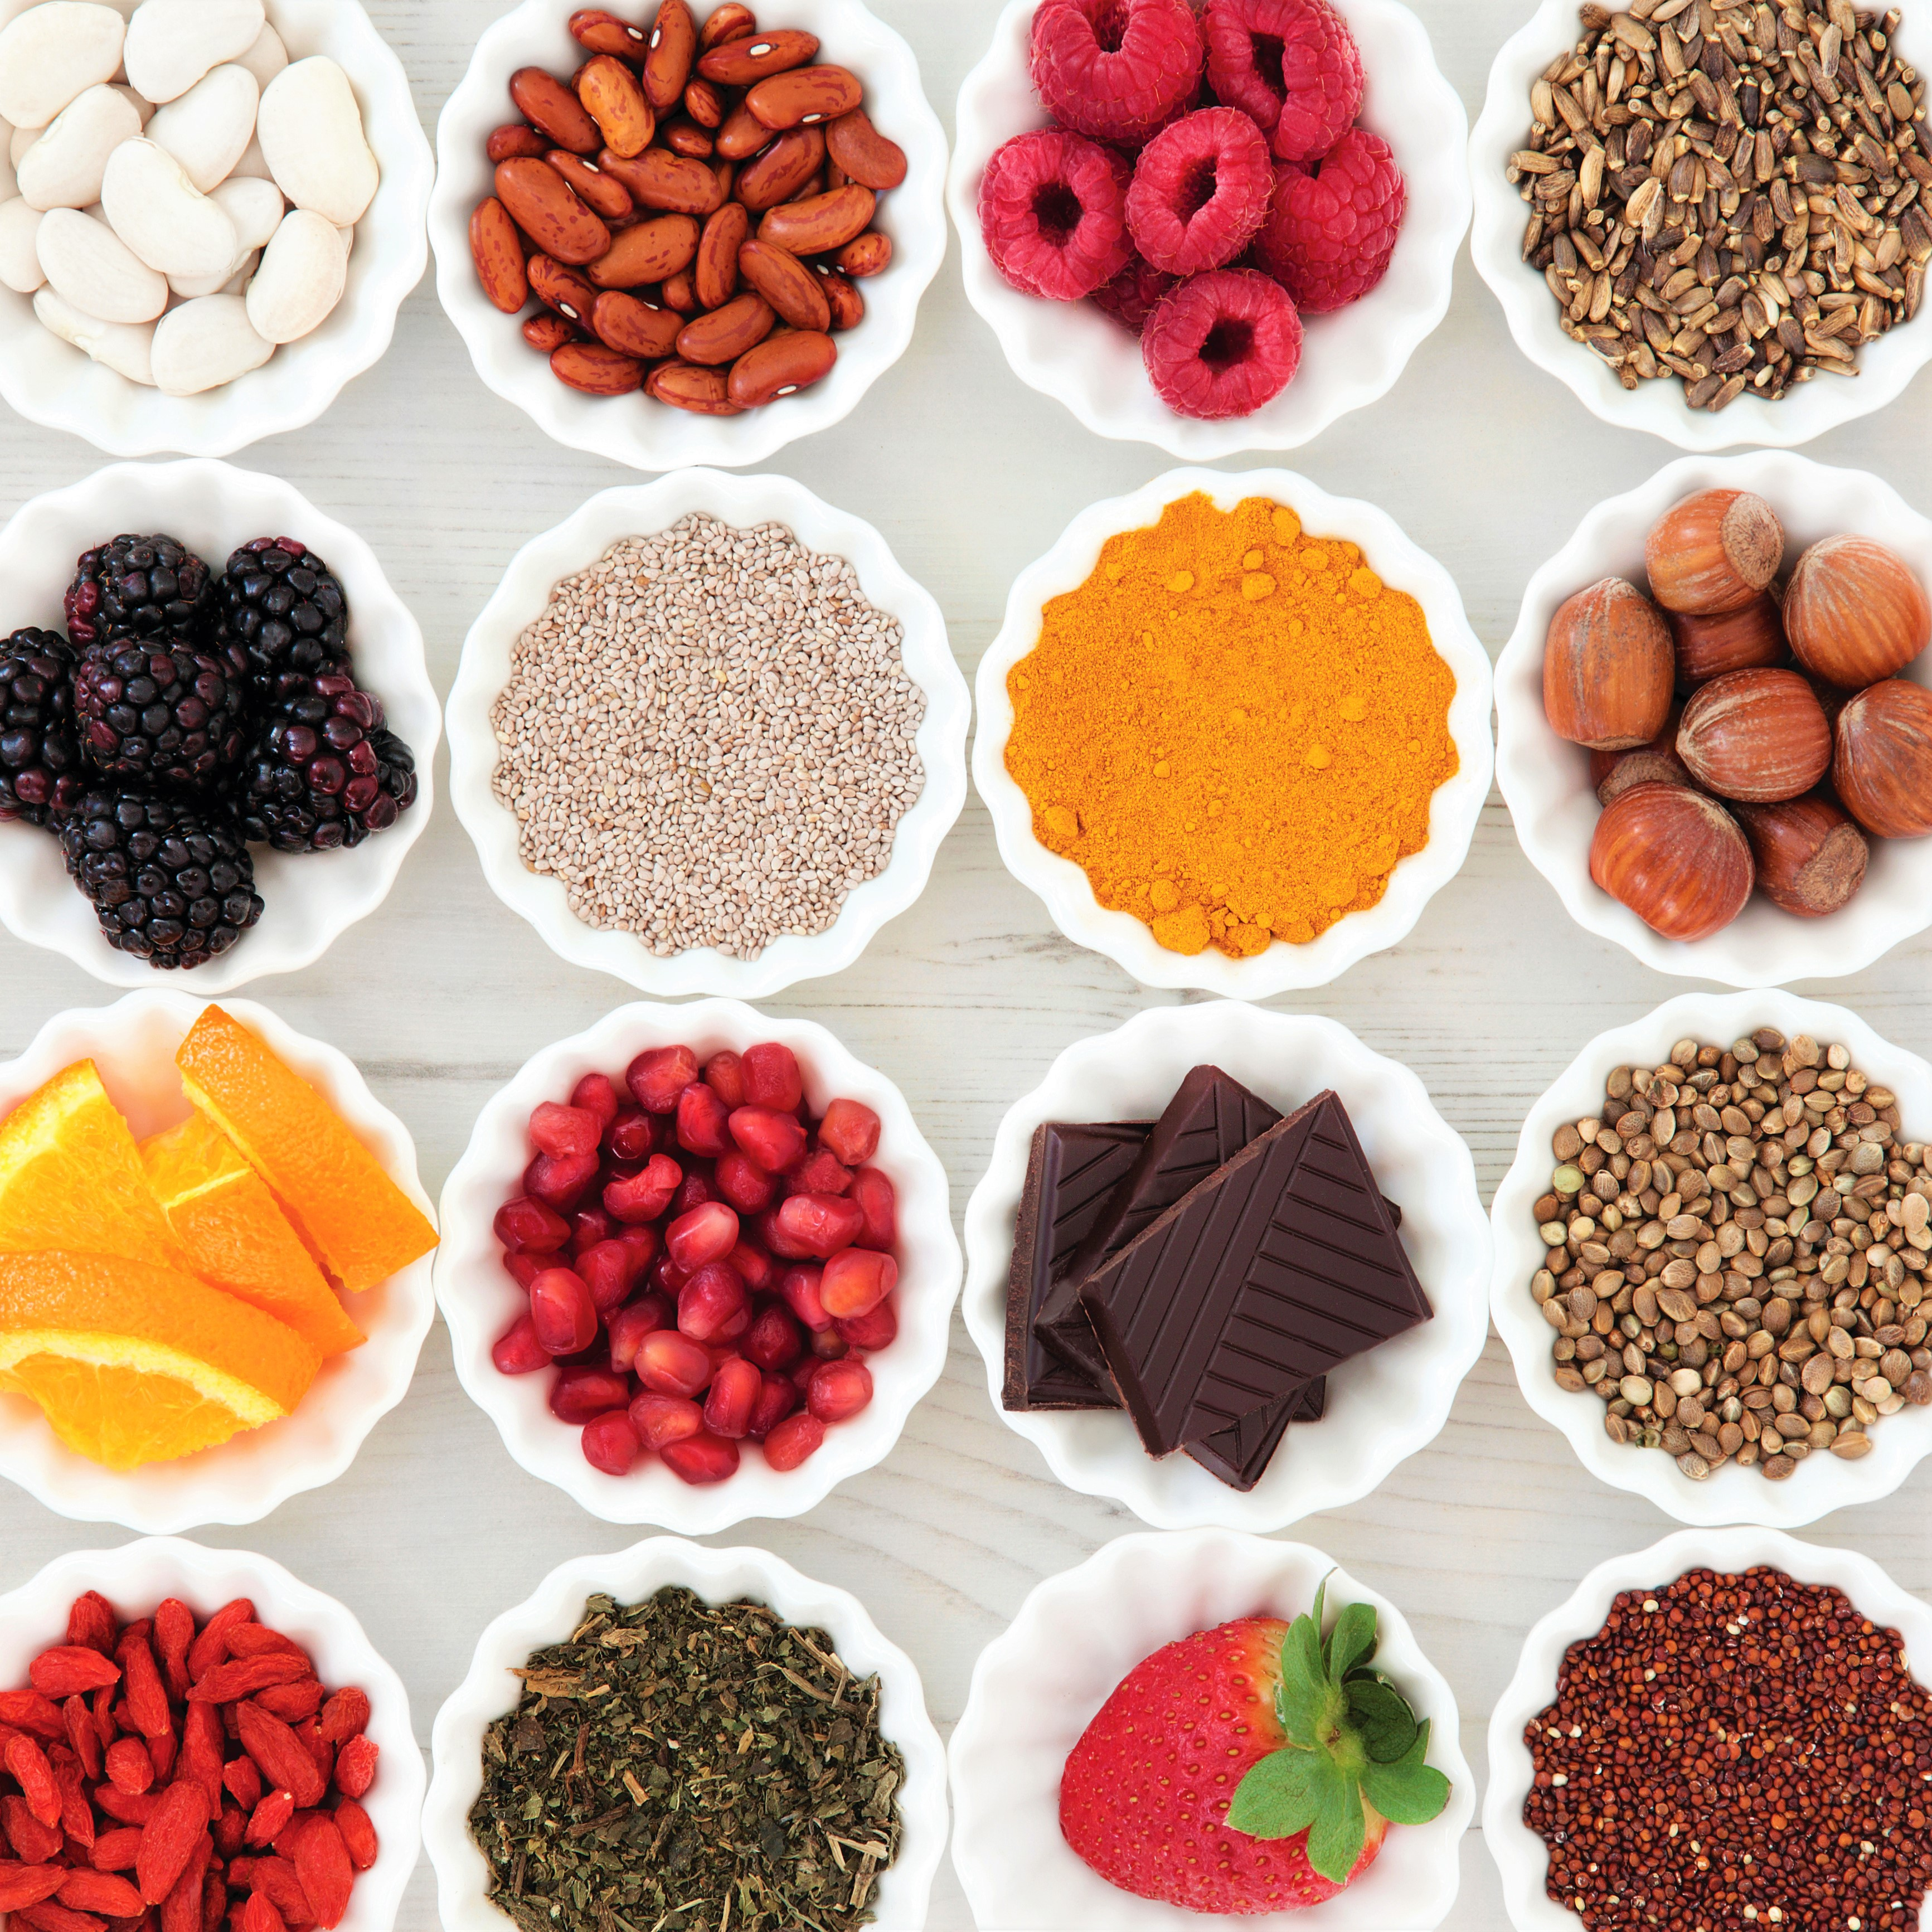 Mediterranean flavors to shape sports nutrition trends, says